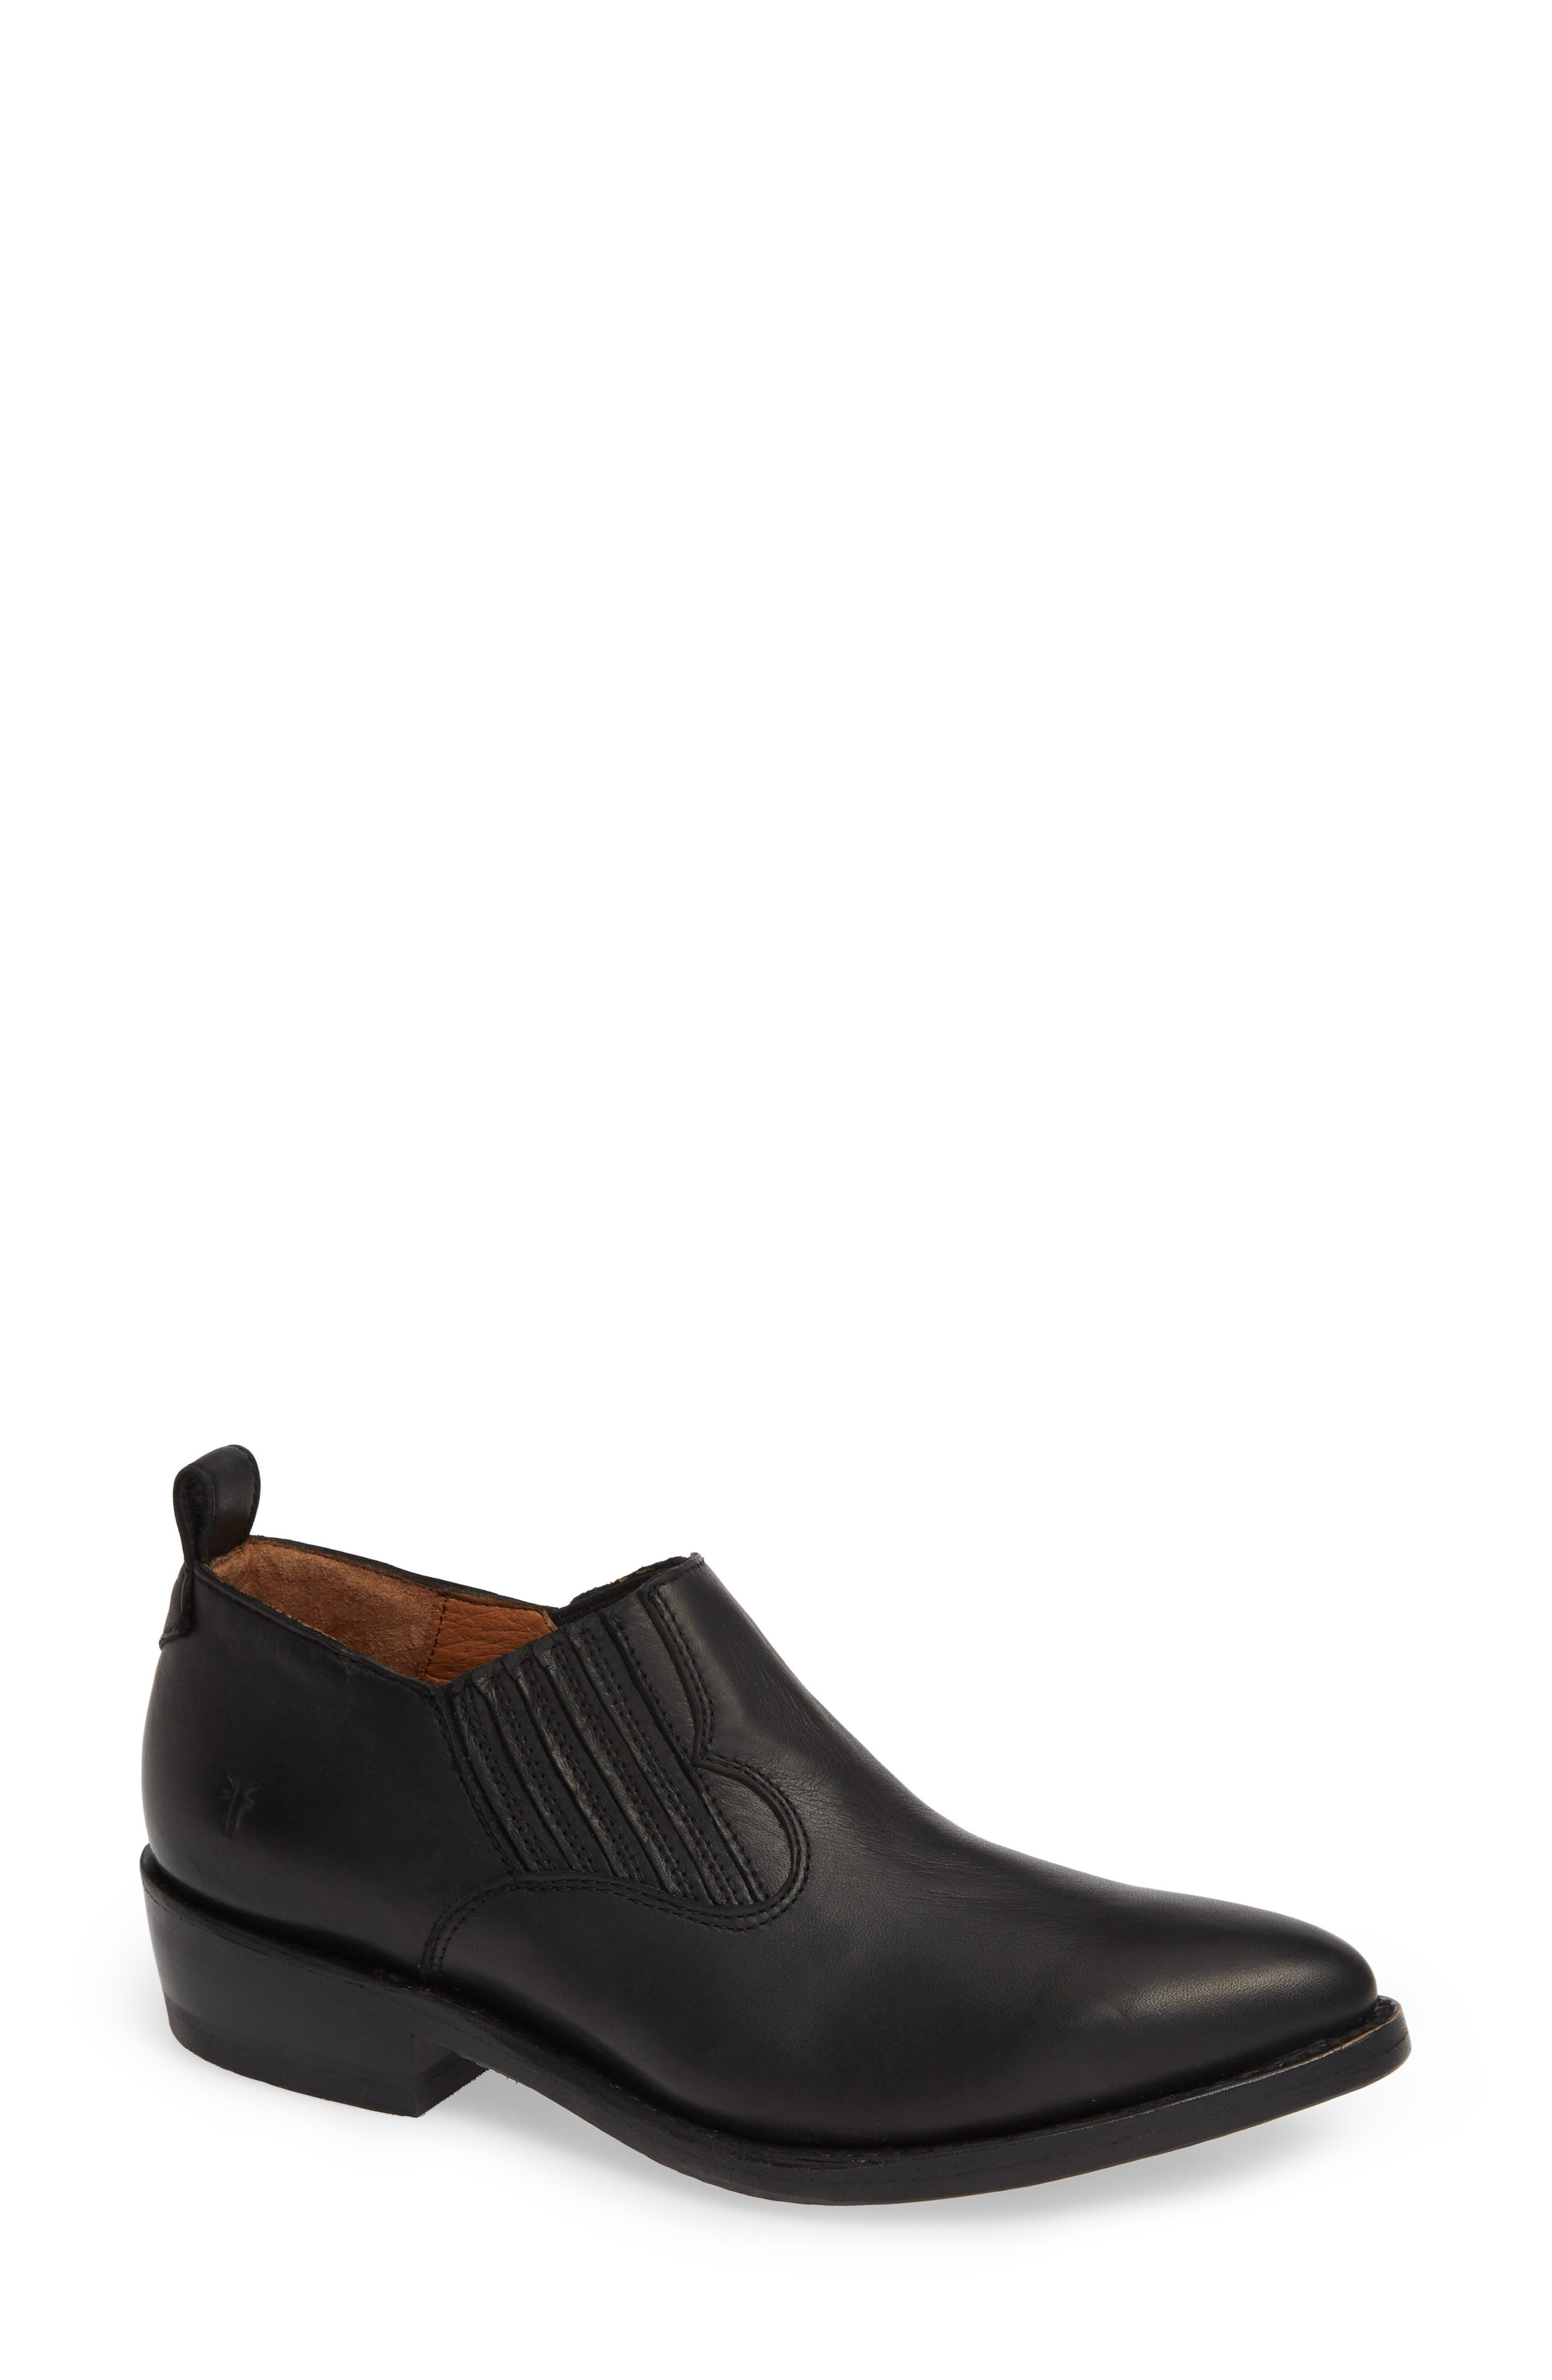 Frye Billy Shootie, Black